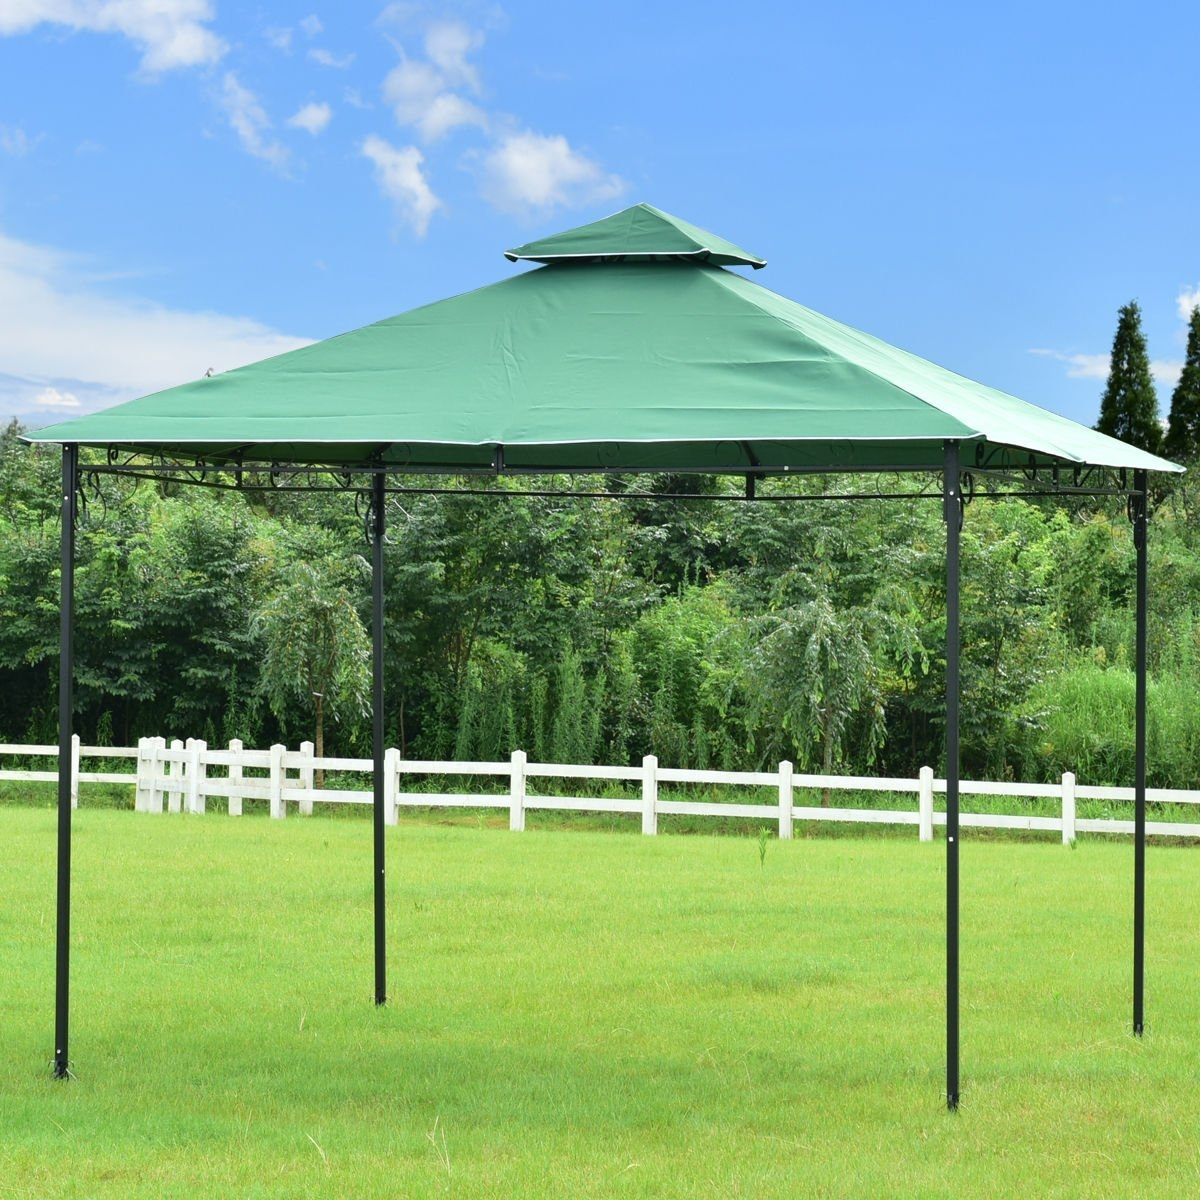 New MTN-G MTN-G 2-Tier 10x10 Gazebo Canopy Shelter Patio Wedding Party Tent Outdoor Awning by MTN Gearsmith